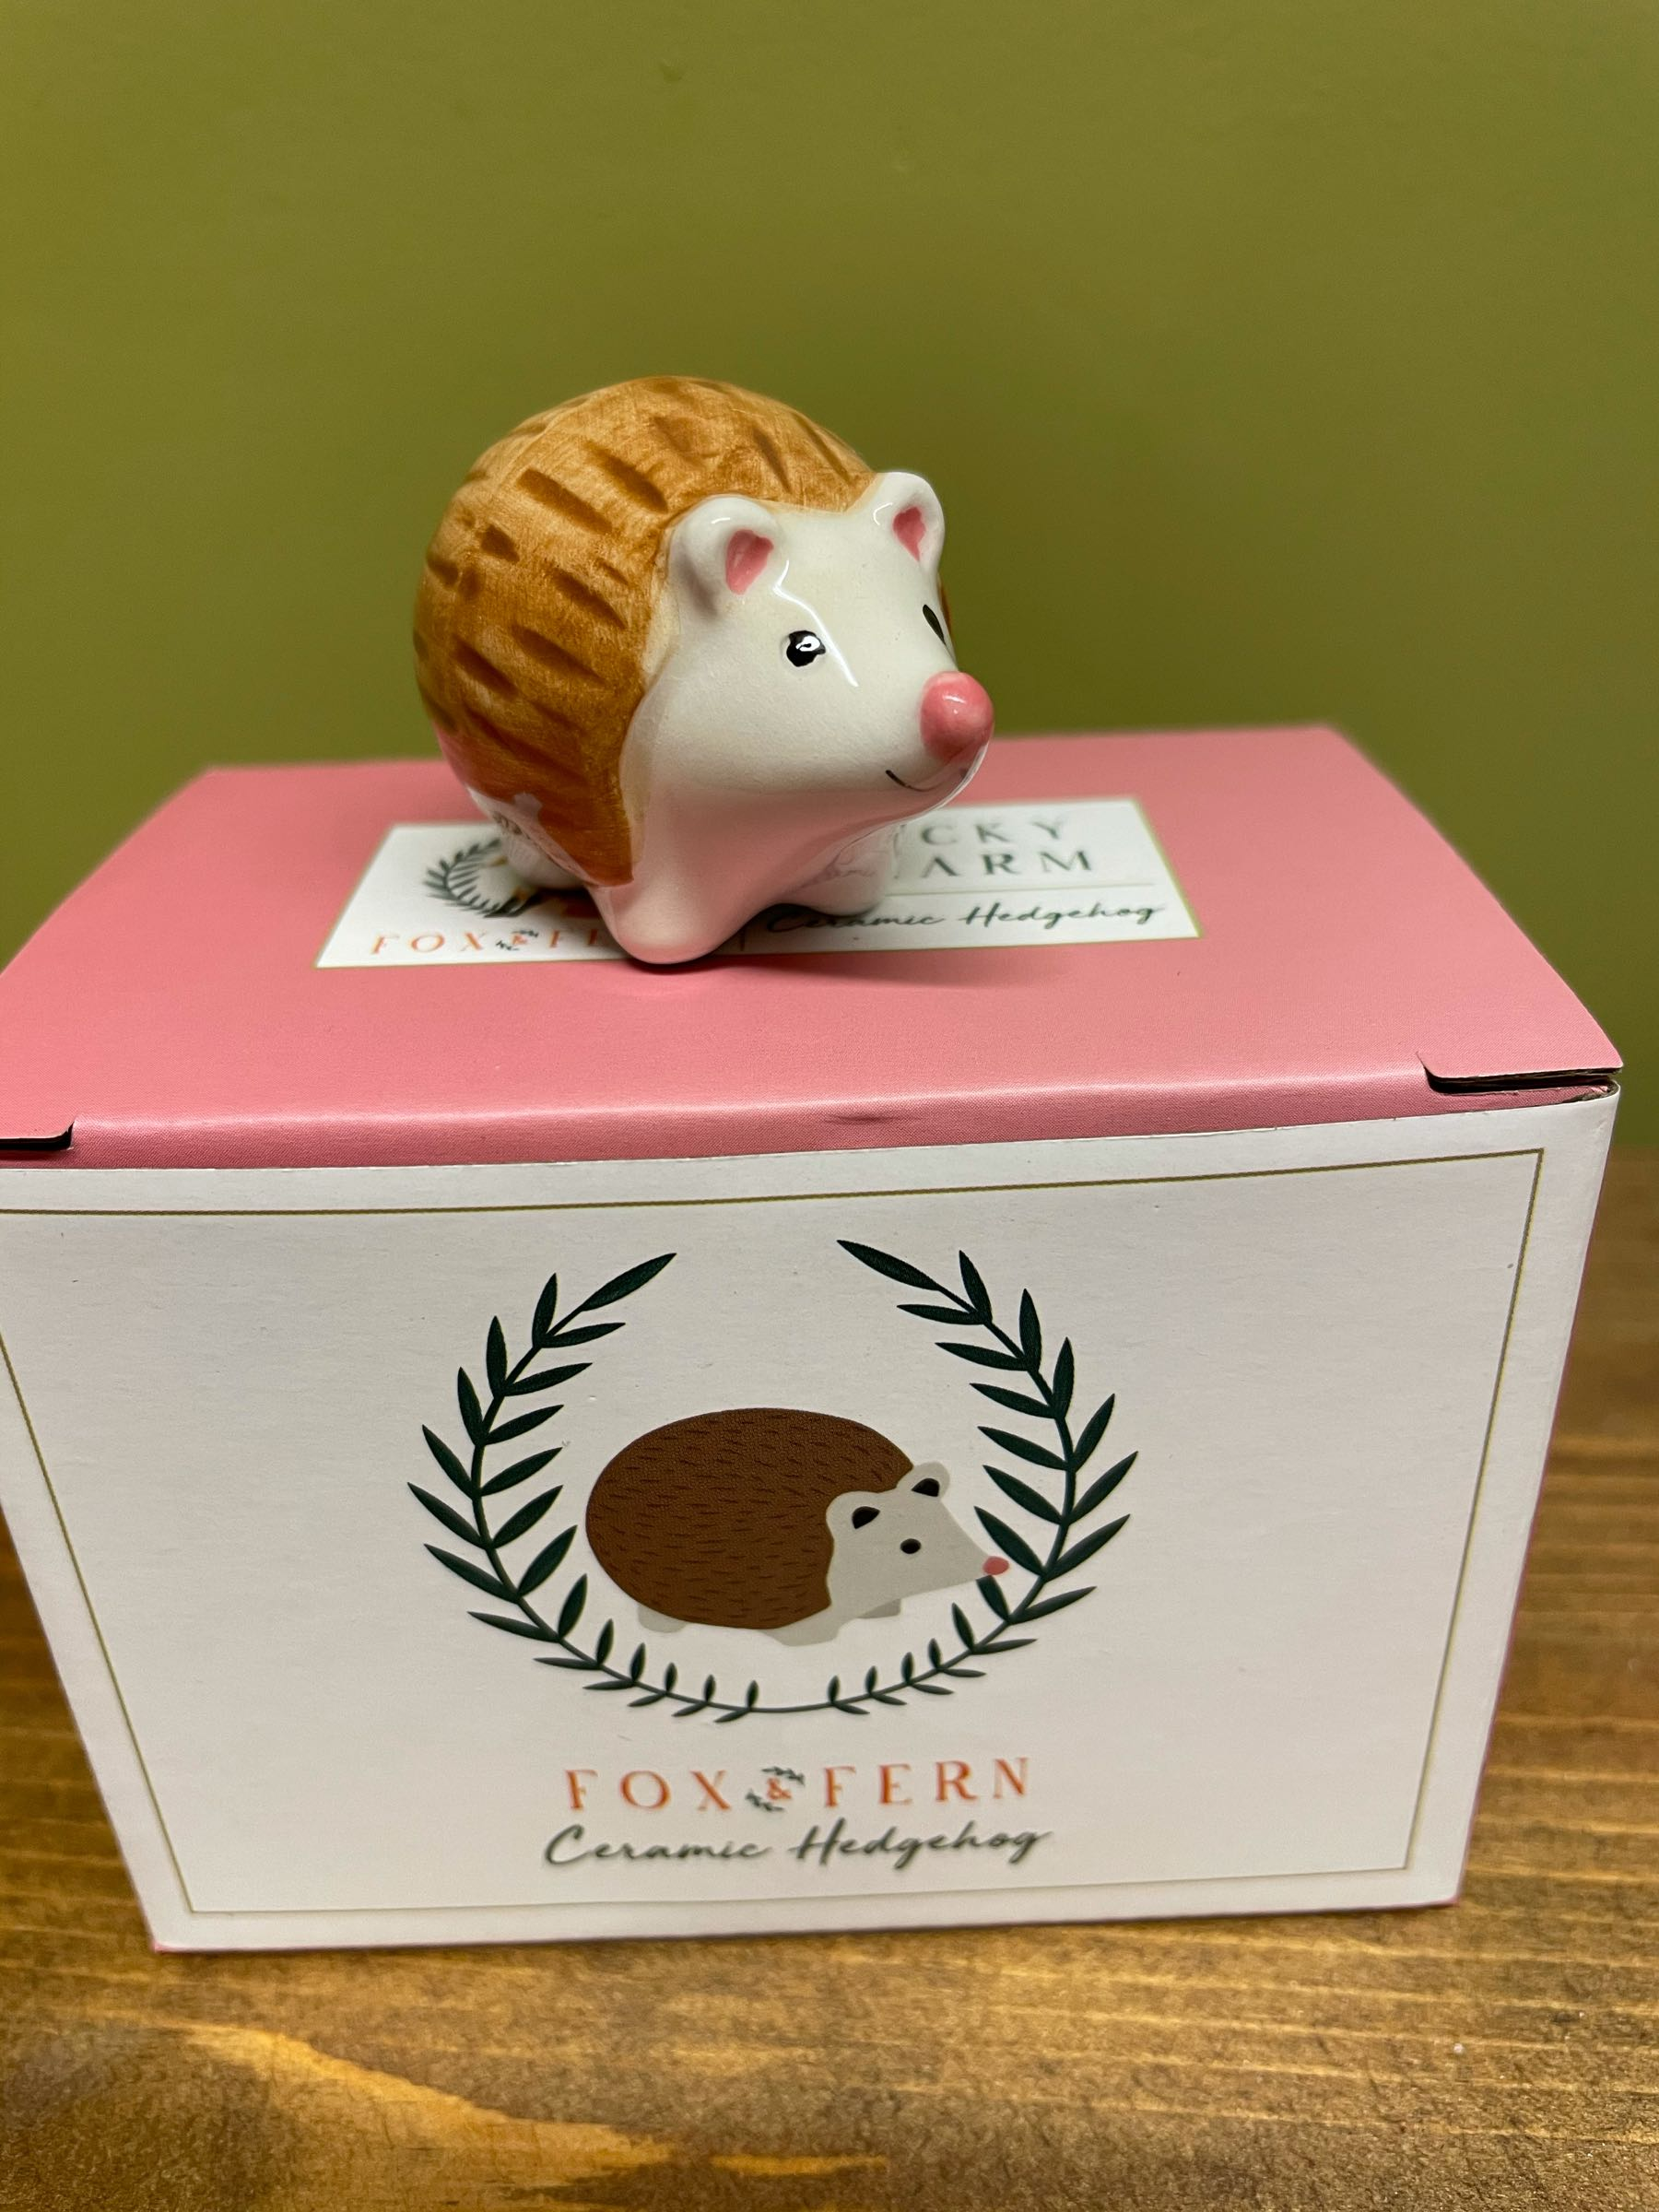 Lucky Charm Ceramic Hedgehog